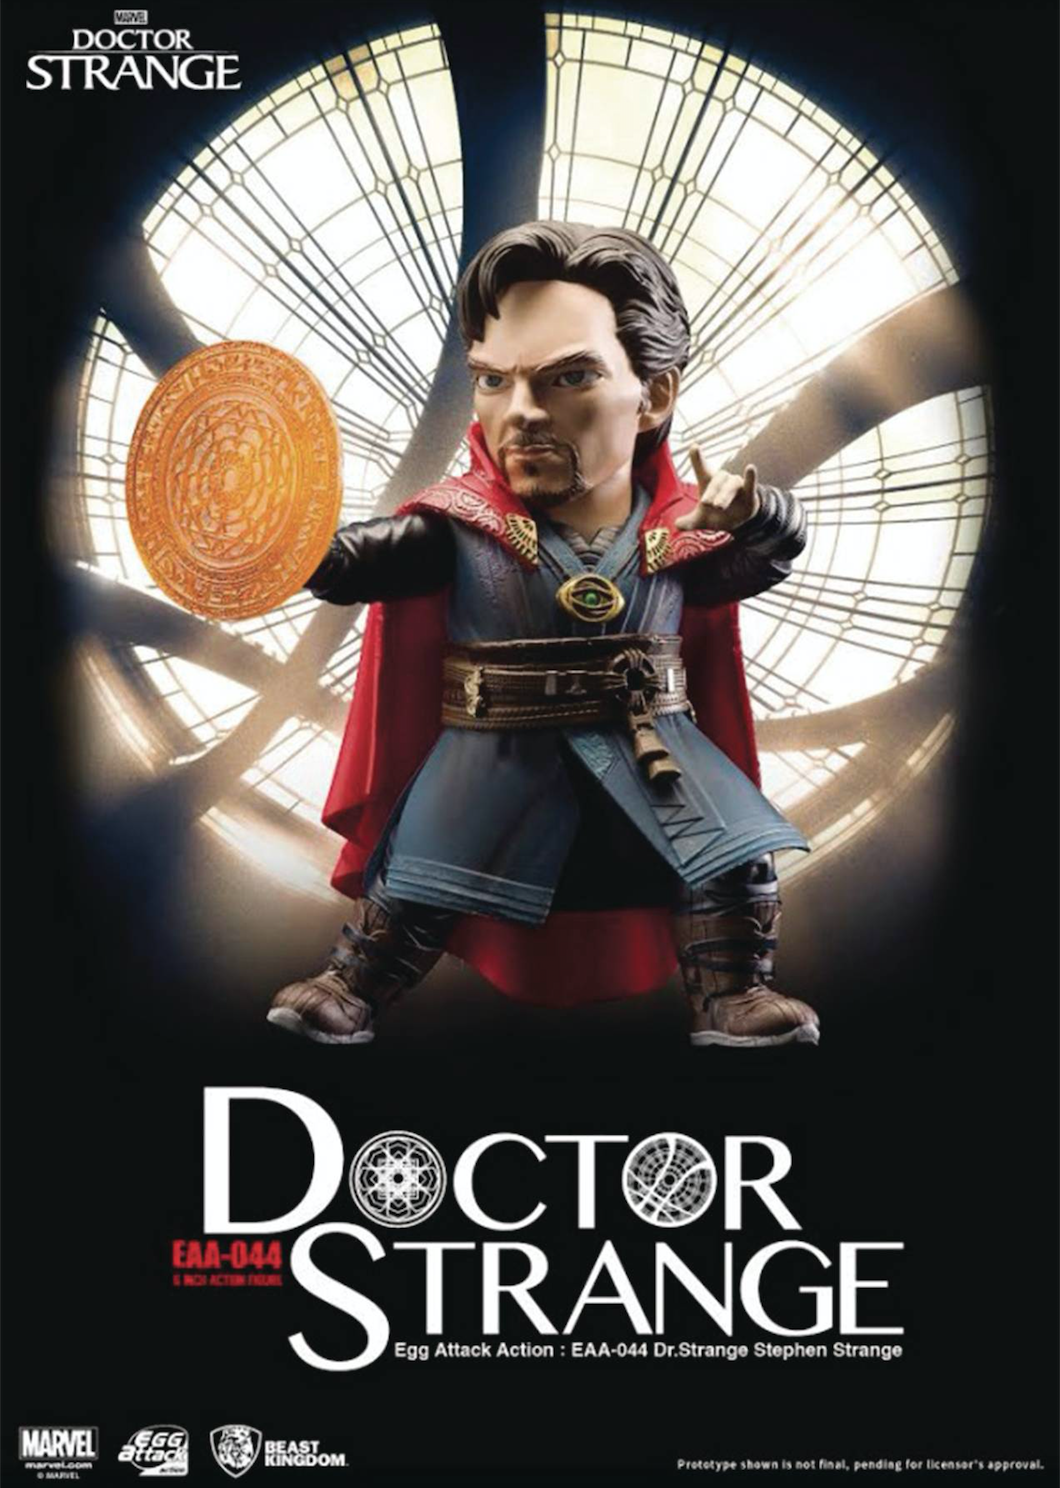 Diamond Brings The Master Of The Mystic Arts To Comic Shops With A PREVIEWS Exclusive Egg Attack Action Figure